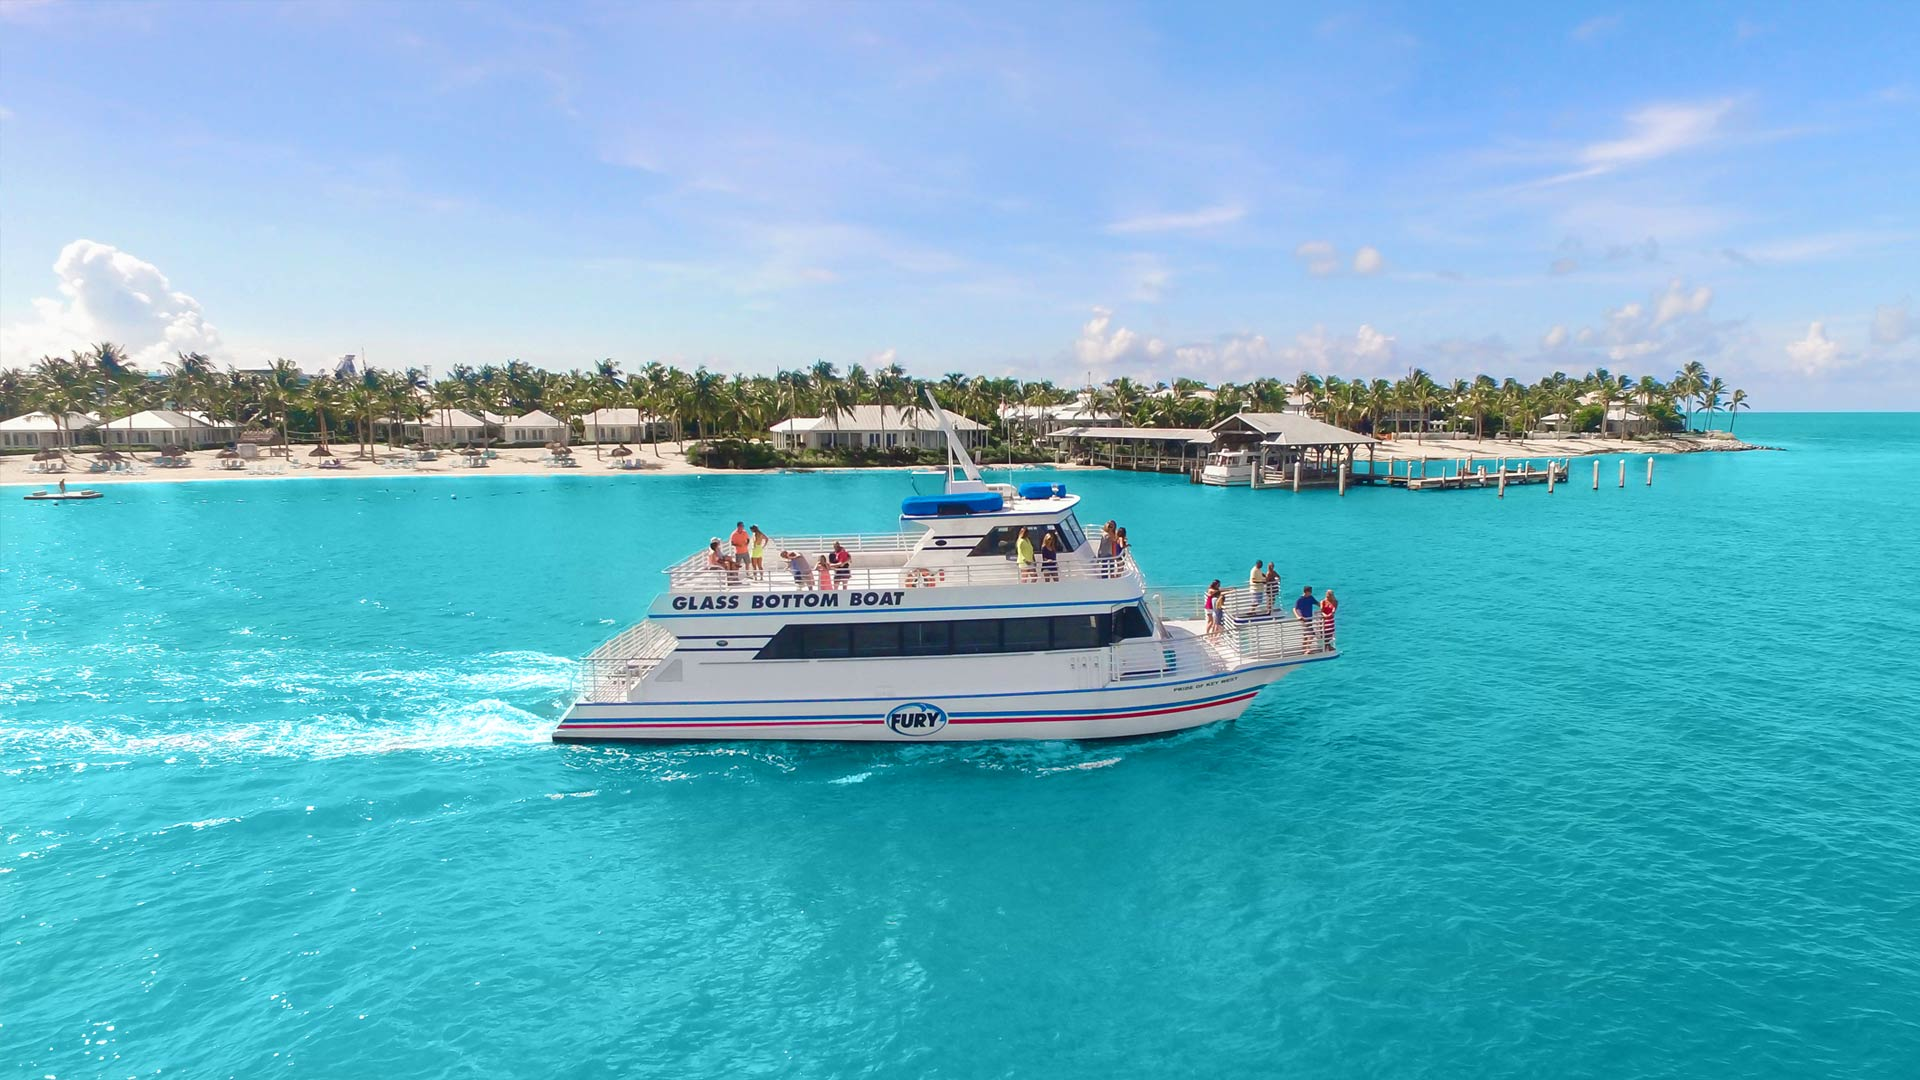 Key West Glass Bottom Boat Tours | Fury Water Adventures